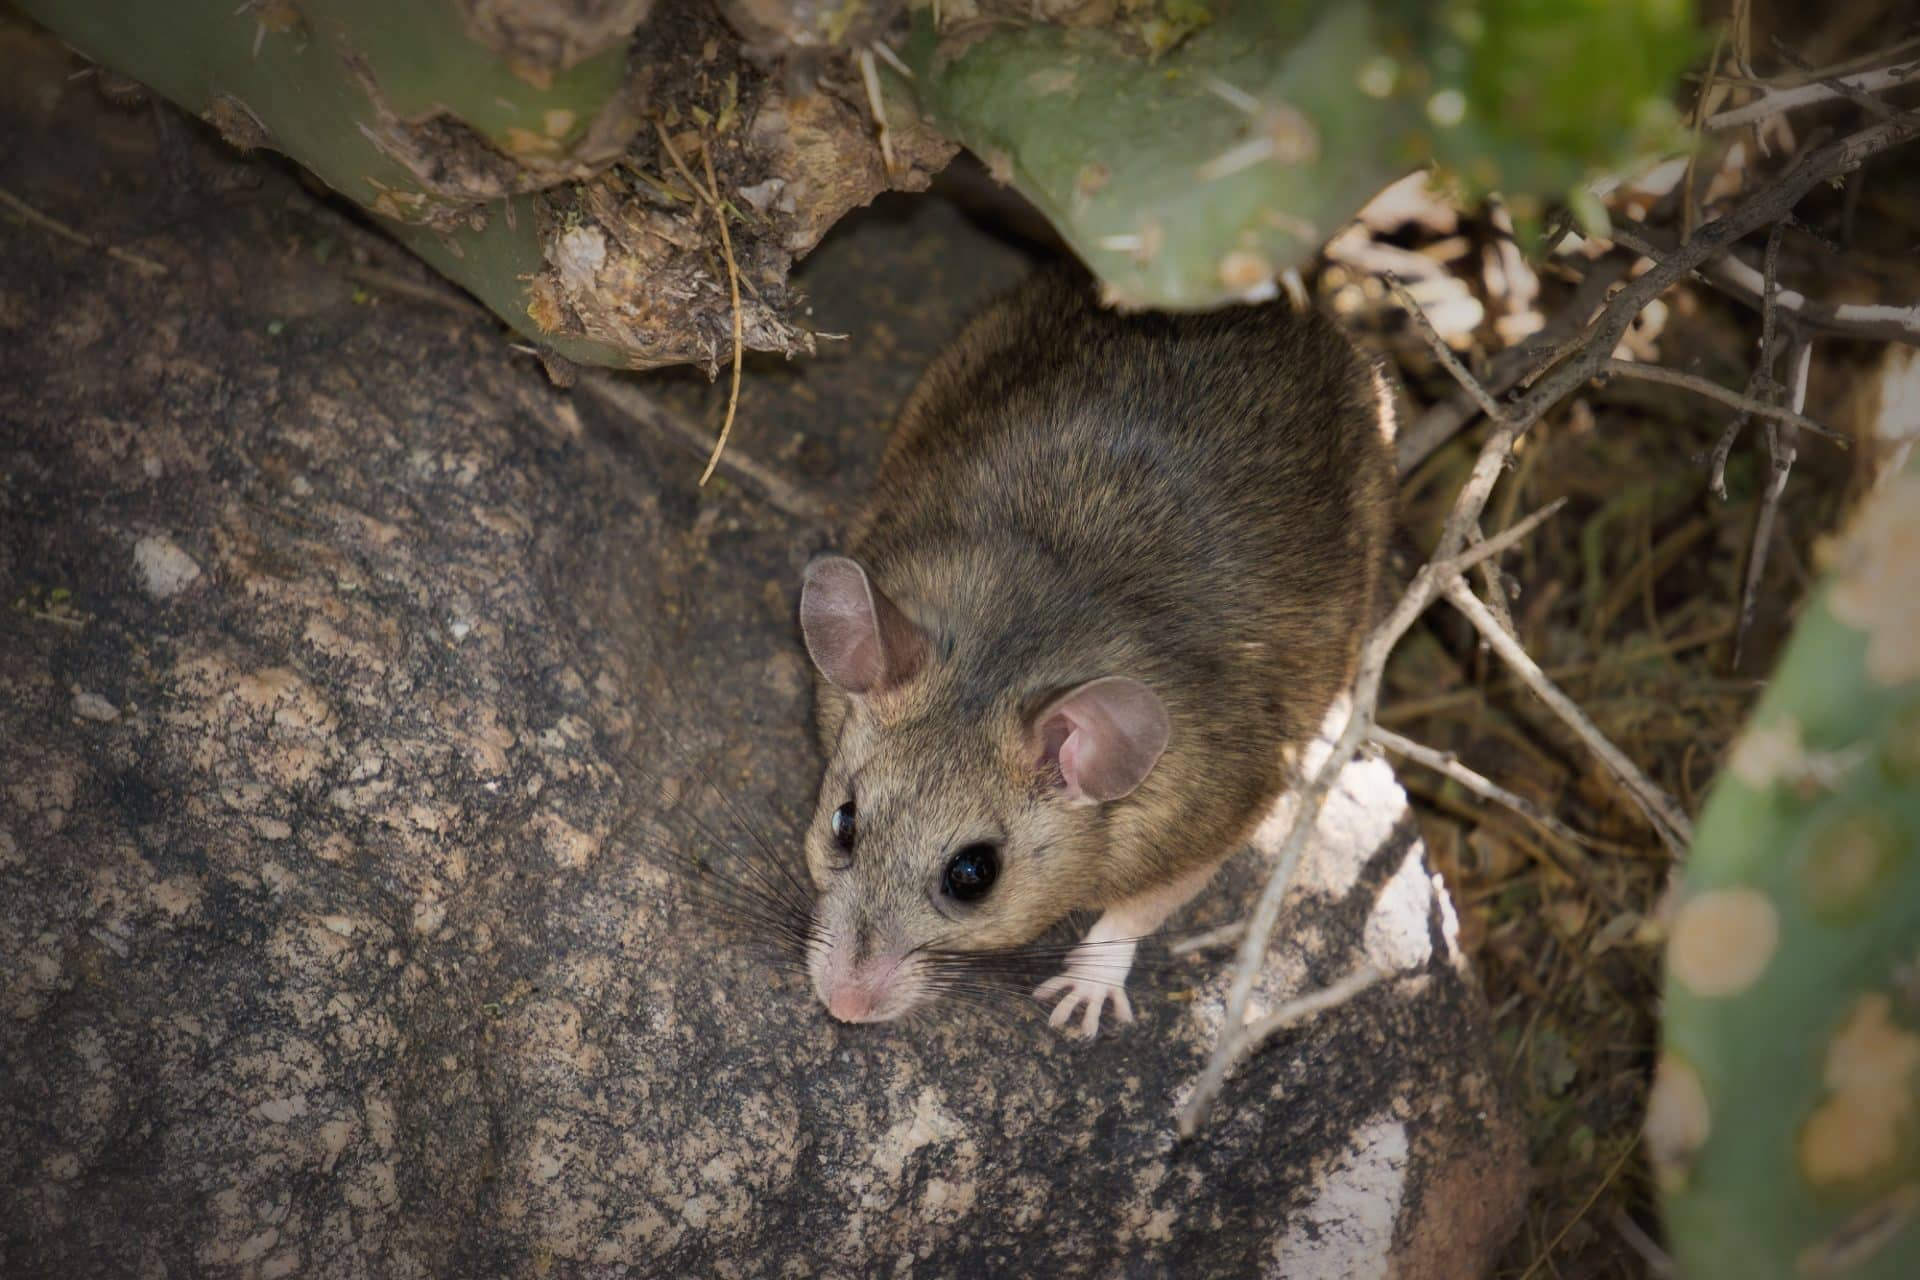 What's a Pack Rat? Is It a Real Rat?